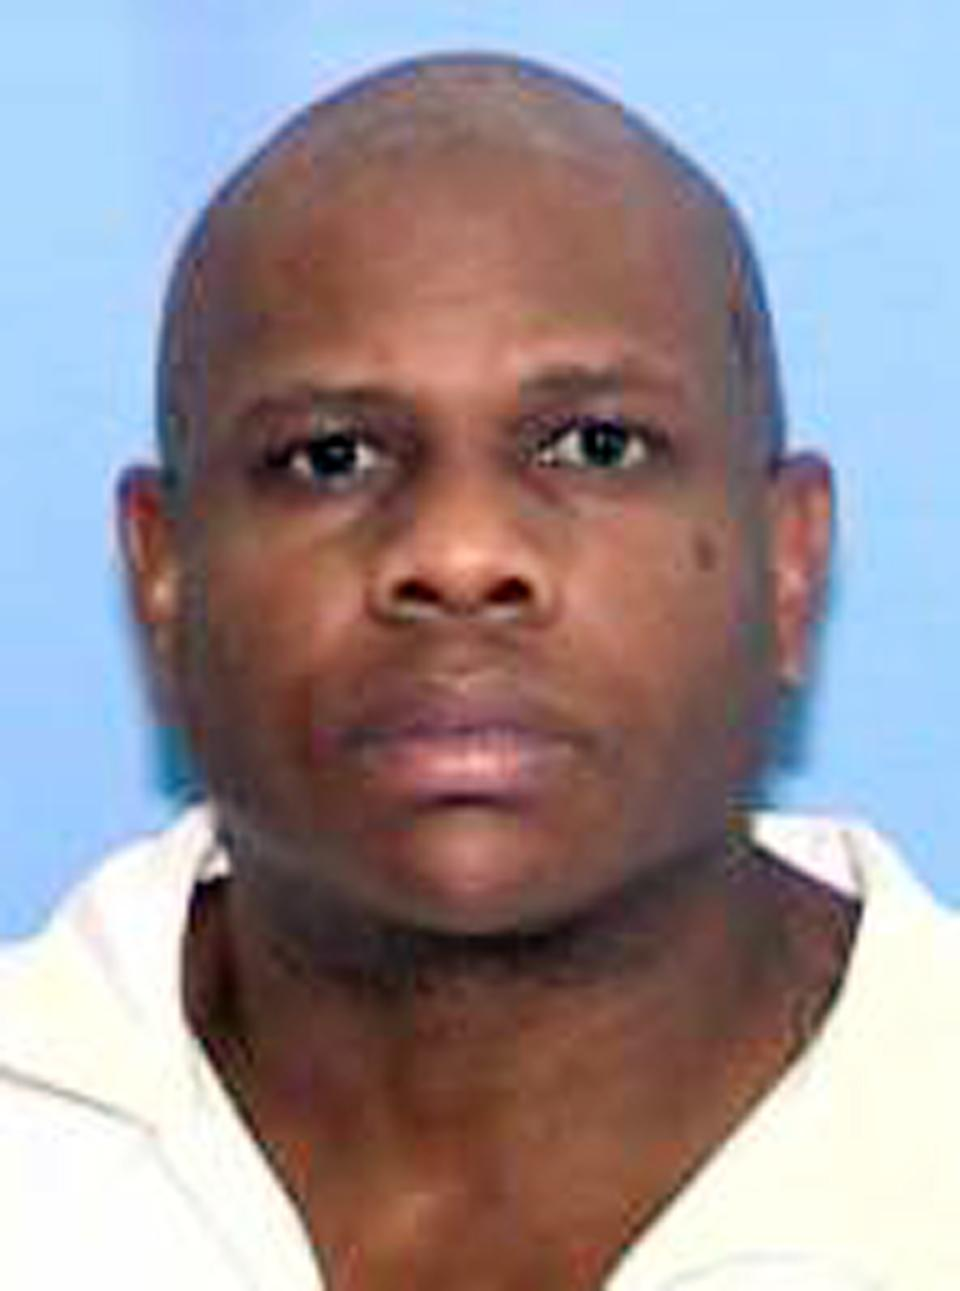 This undated photo provided by the Texas Department of Public Safety shows Charles Brownlow Jr. Brownlow was arrested early Tuesday, Oct. 29, 2013, as a suspect in a case where five people were killed in a string of slayings across Terrell, Texas. (AP Photo/Texas Department of Public Safety)